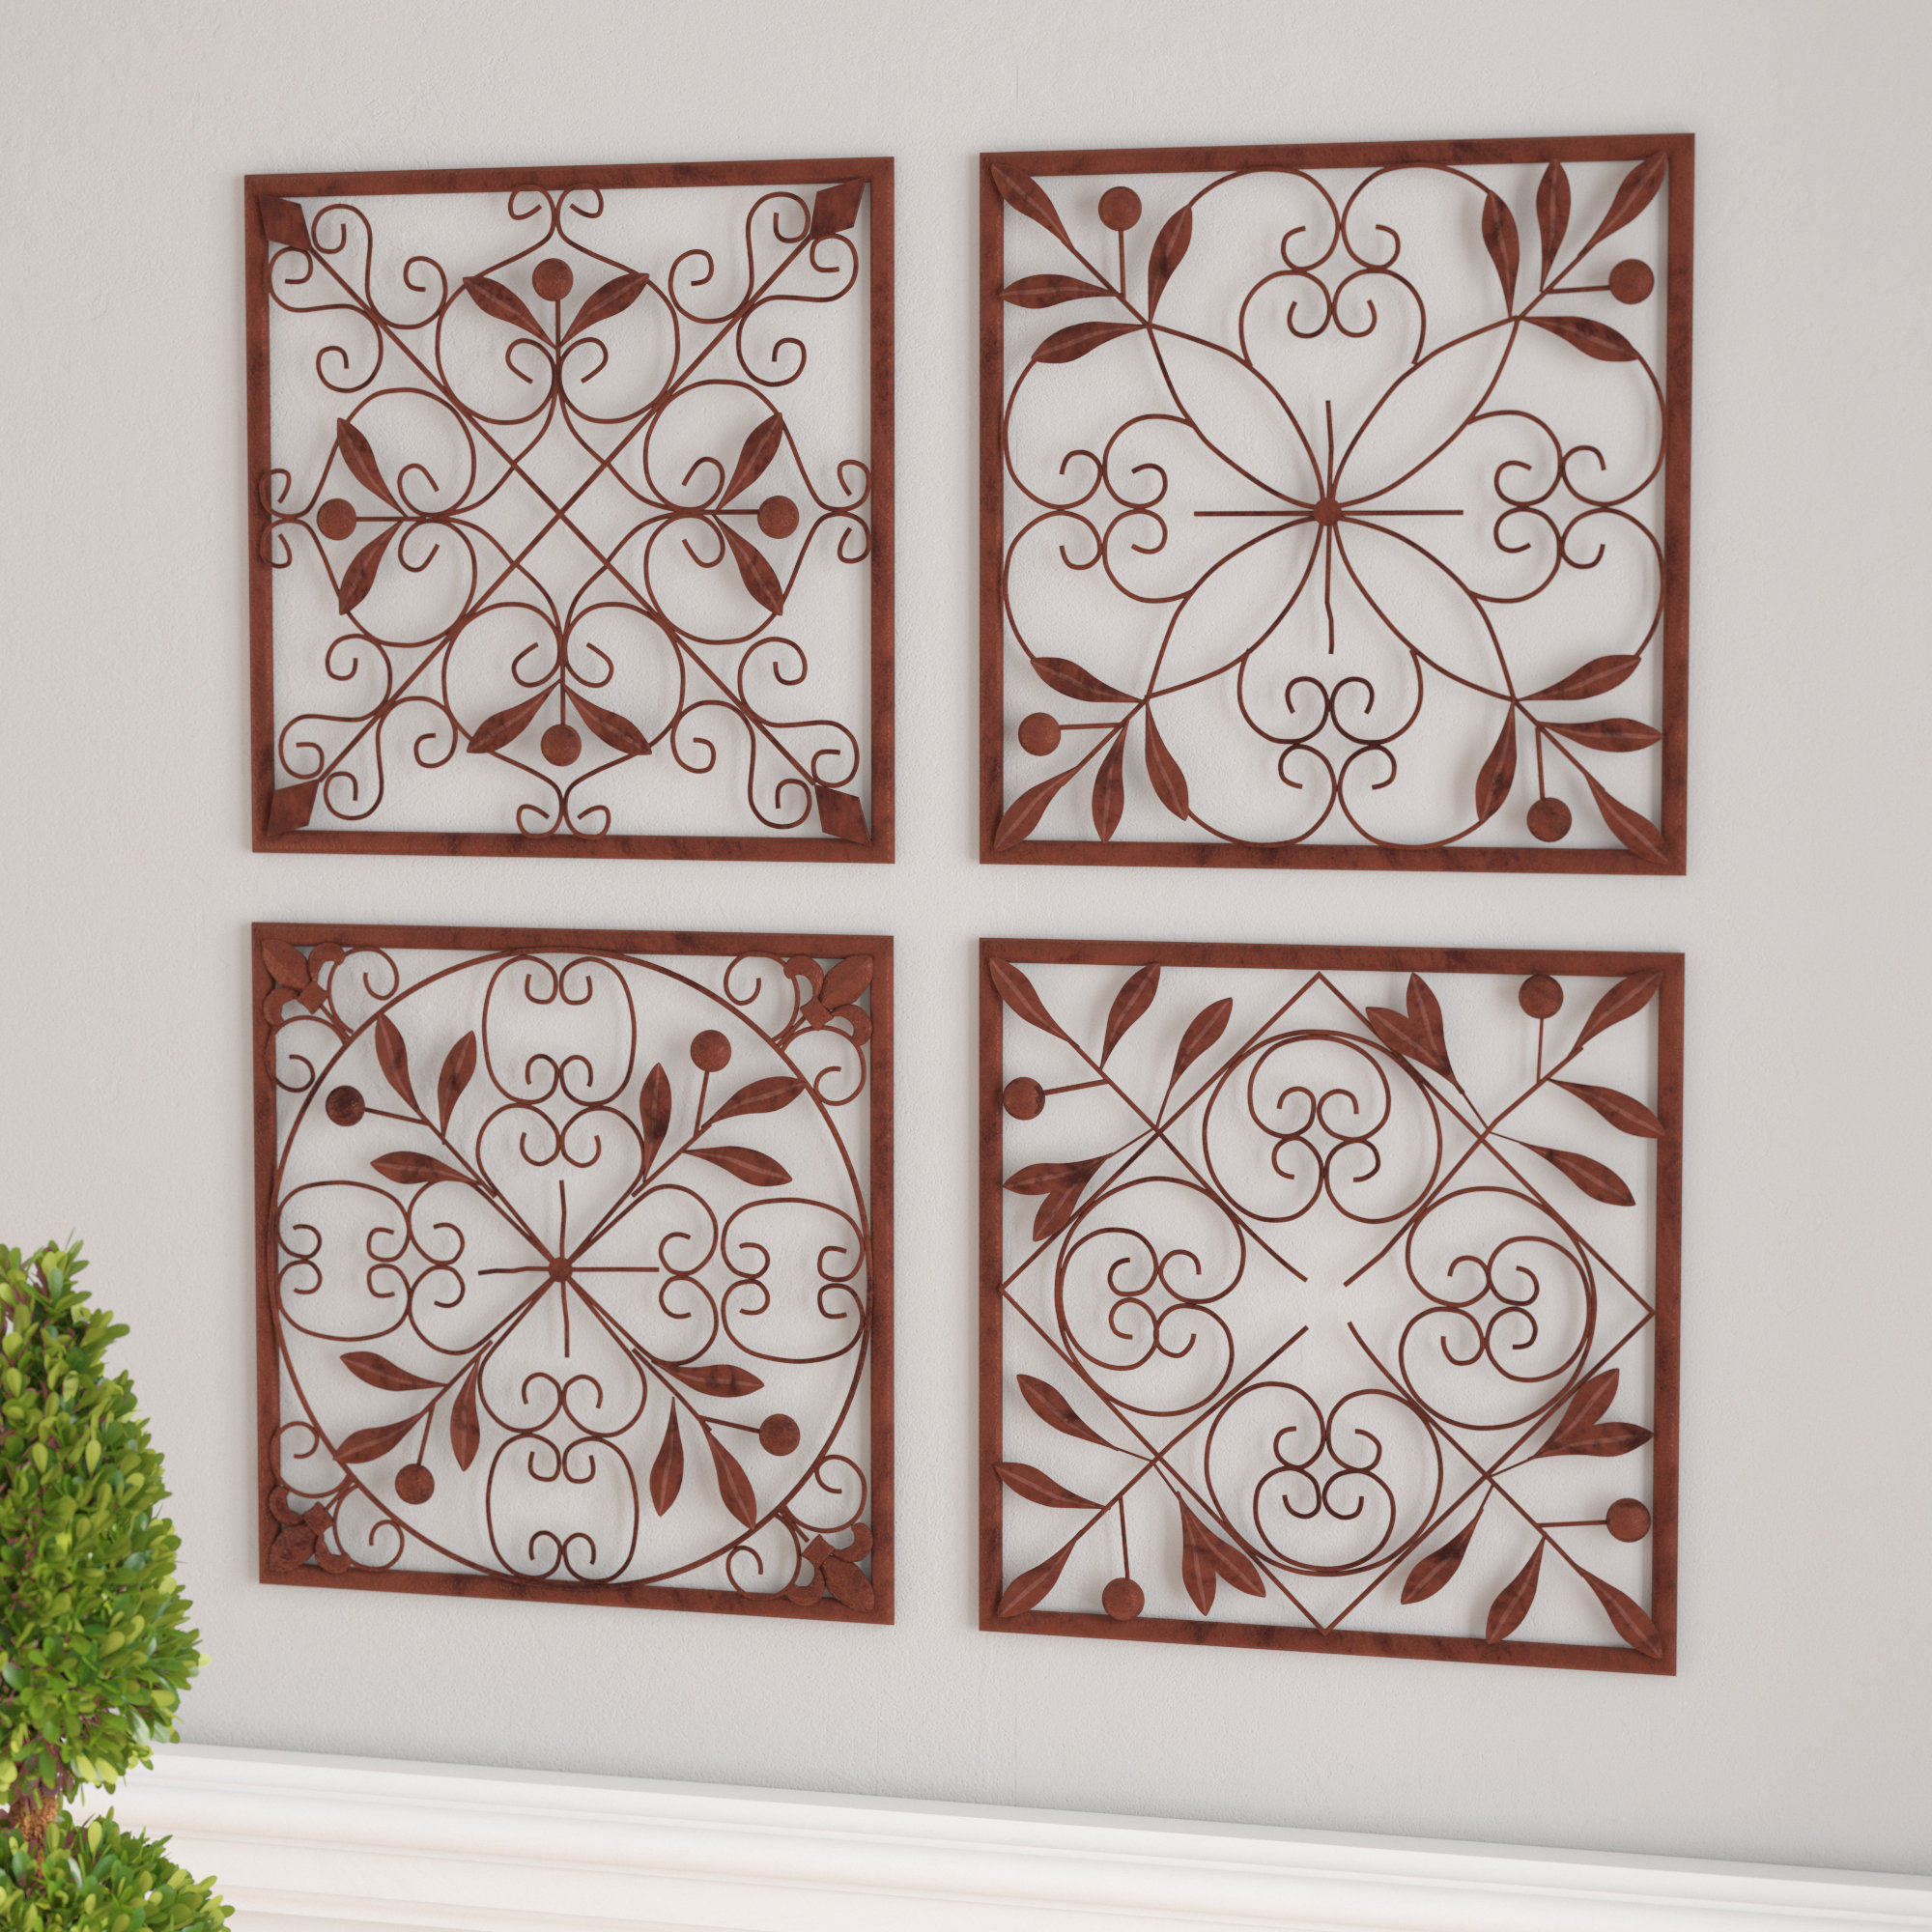 Charlton Home 4 Piece Wall Décor Set & Reviews | Wayfair intended for Metal Wall Decor by Charlton Home (Image 5 of 30)